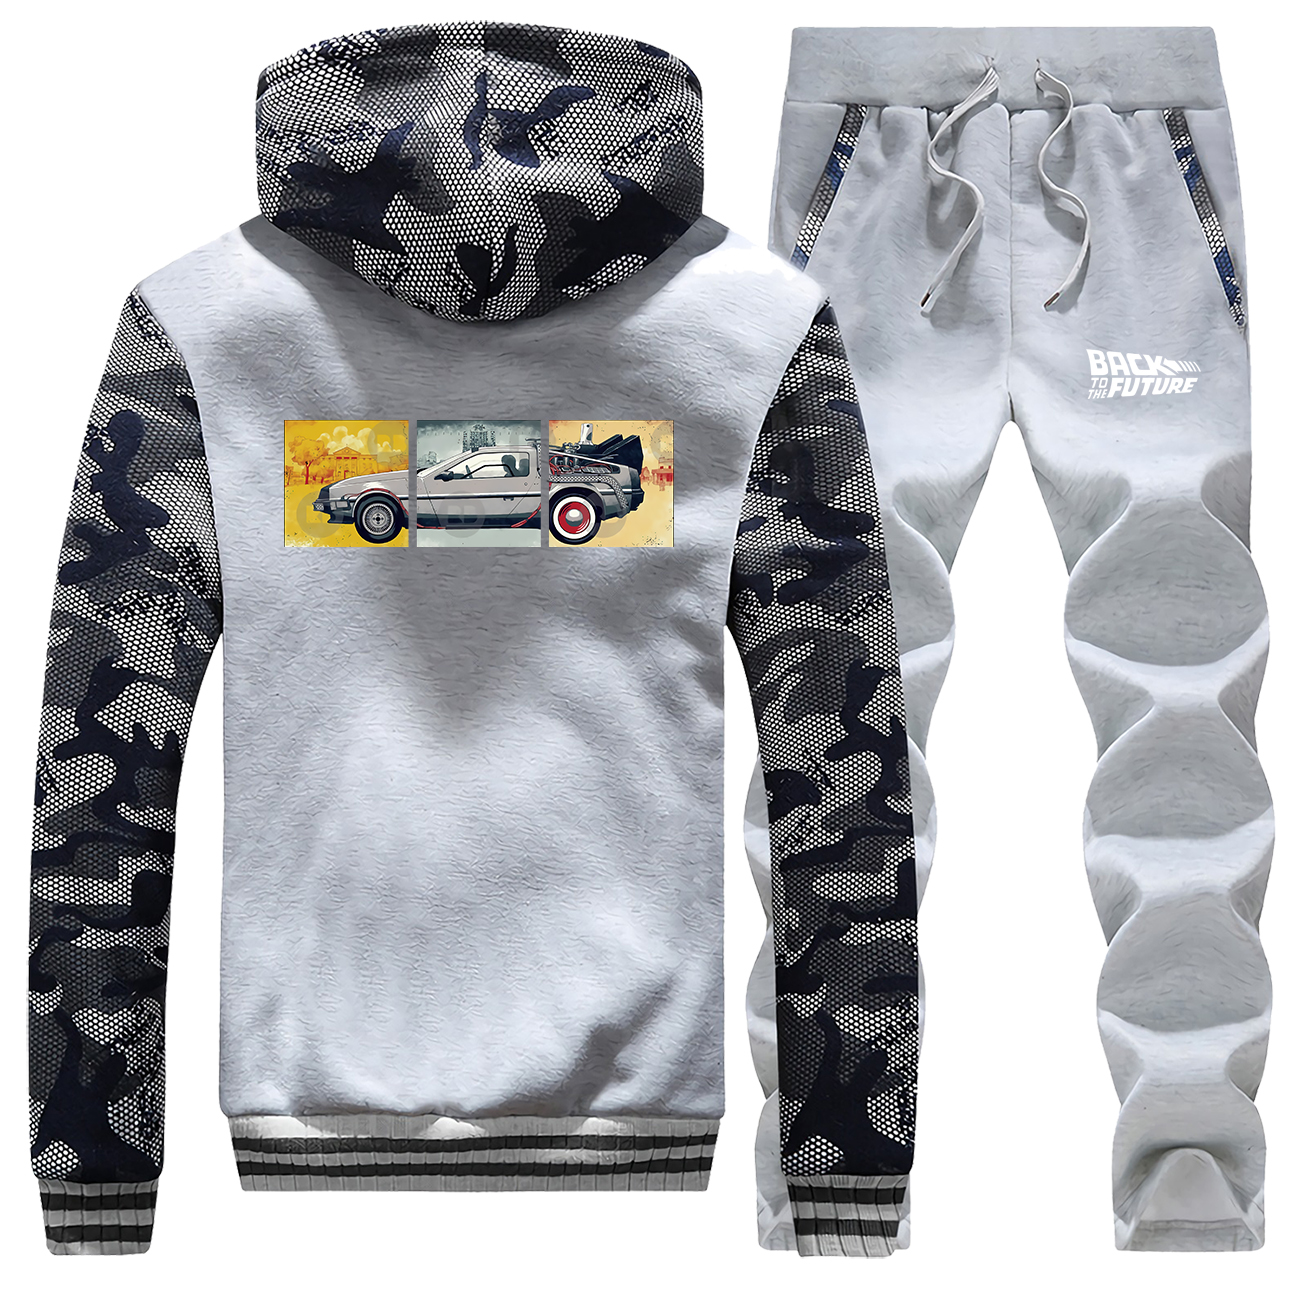 Back To The Future Print Men's Full Suit Tracksuit Casual Comfortable Camo AE86 Jackets Fashion Military Warm Pants Sweatshirt